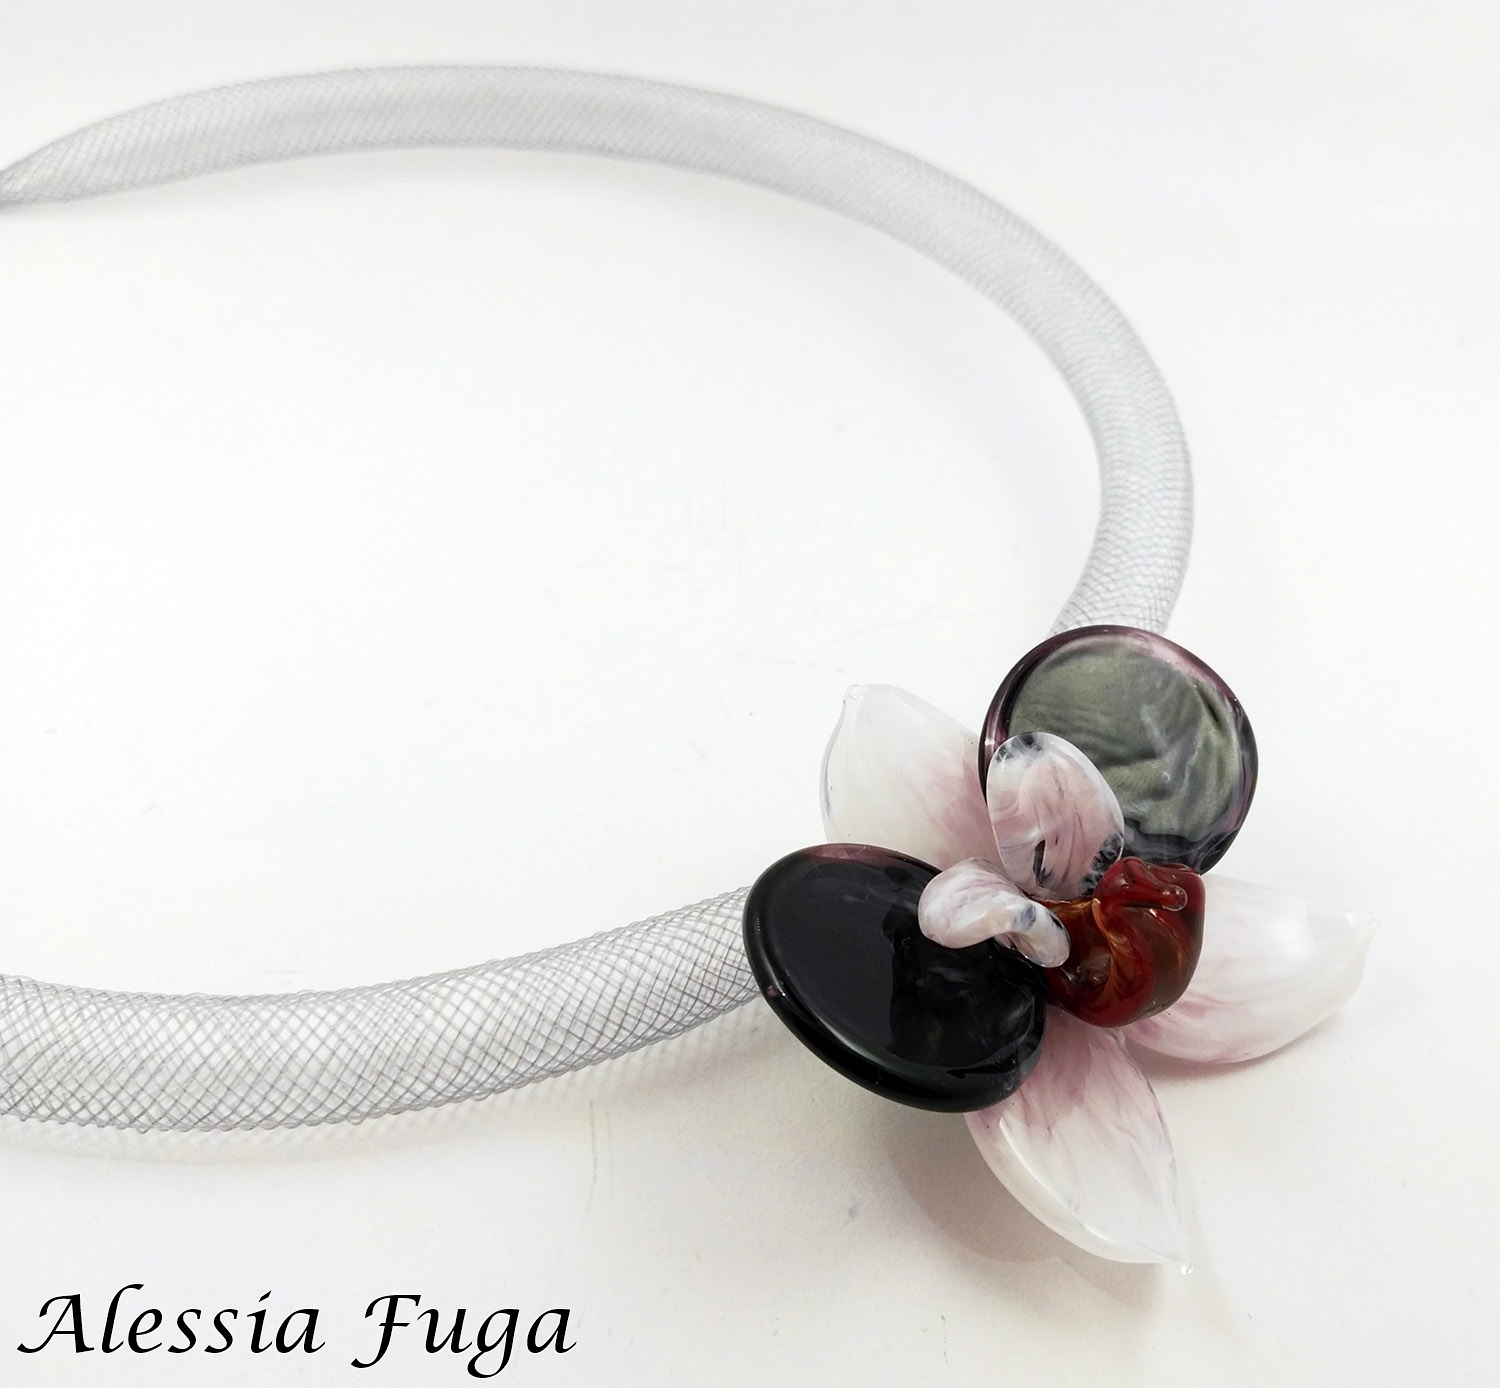 White pink and dark amethyst lampwork orchid pendant made by Alessia Fuga